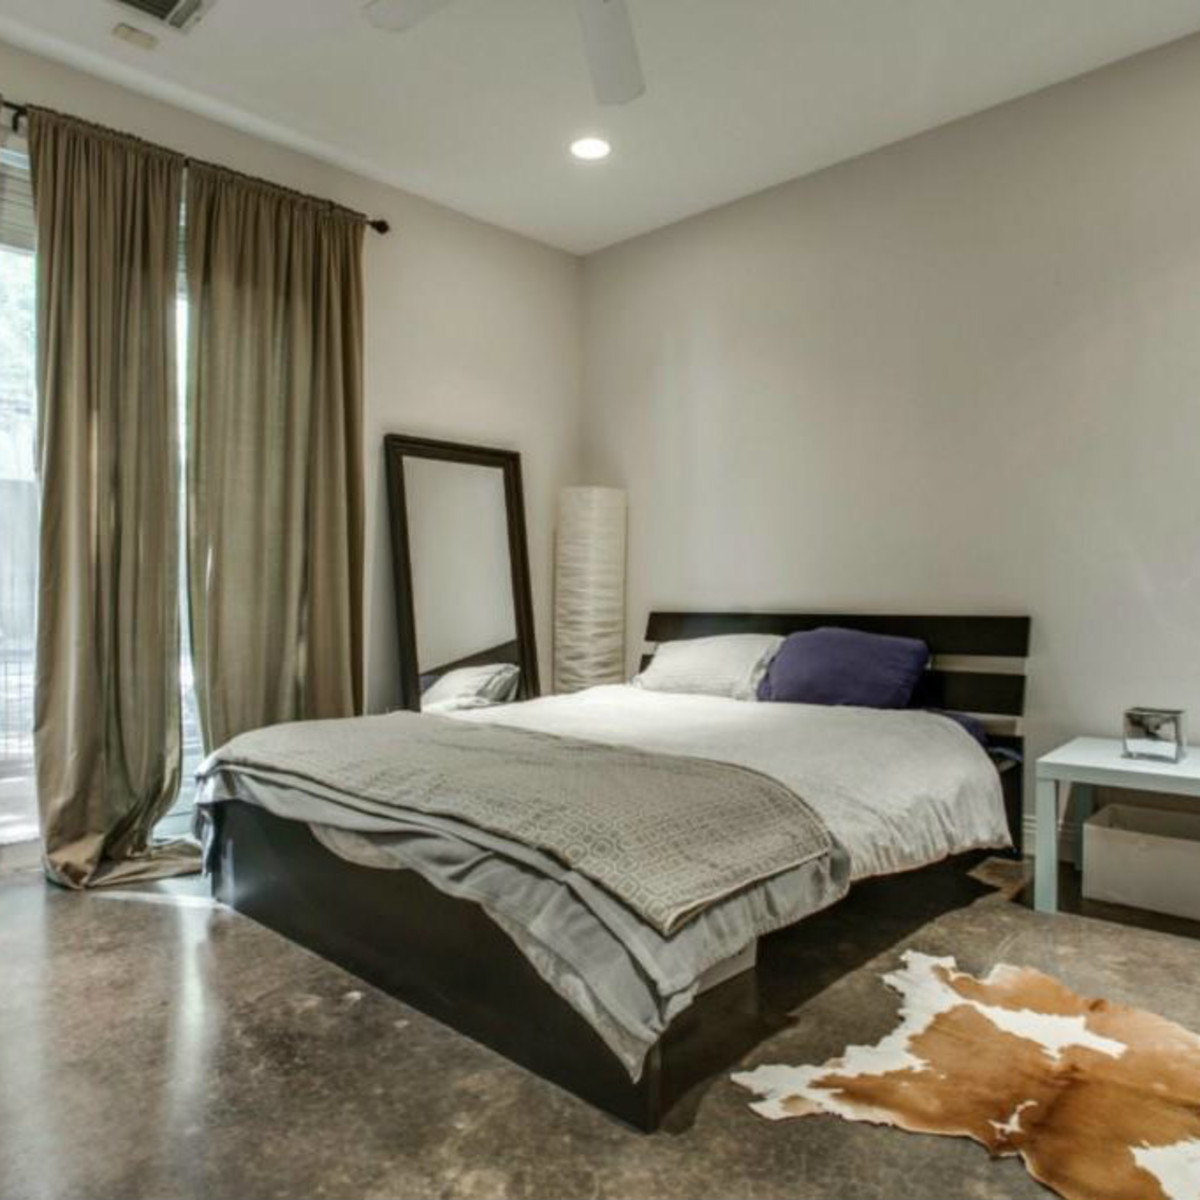 Bedroom at 3009 State St. in Dallas